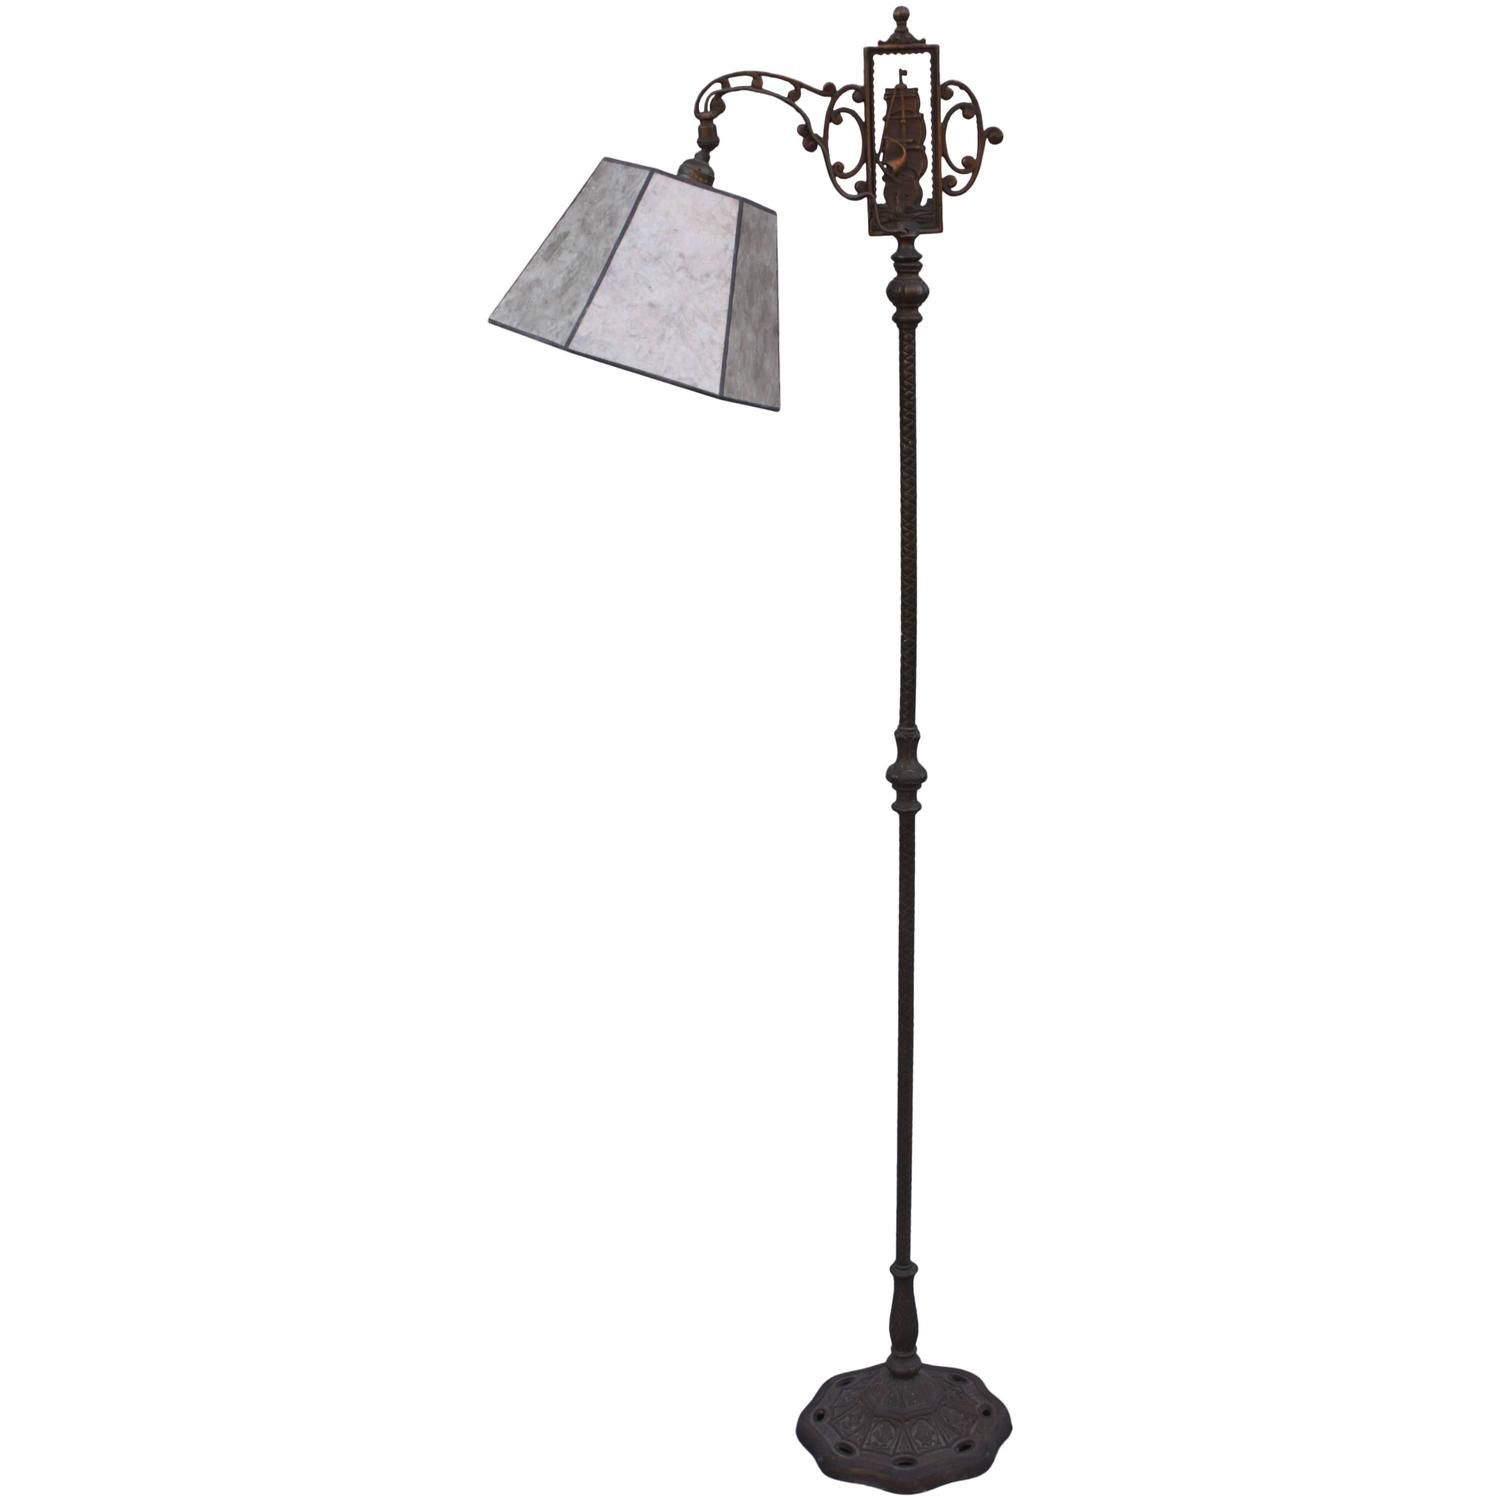 unusual size online black lamps sale arc imagination decorative glass for modern most standing pole of light table parts led chandelier lowes contemporary uk shades metal fun wofi lamp shop ikea morespoons chrome on best full tiffany out design curved this lights white floor world